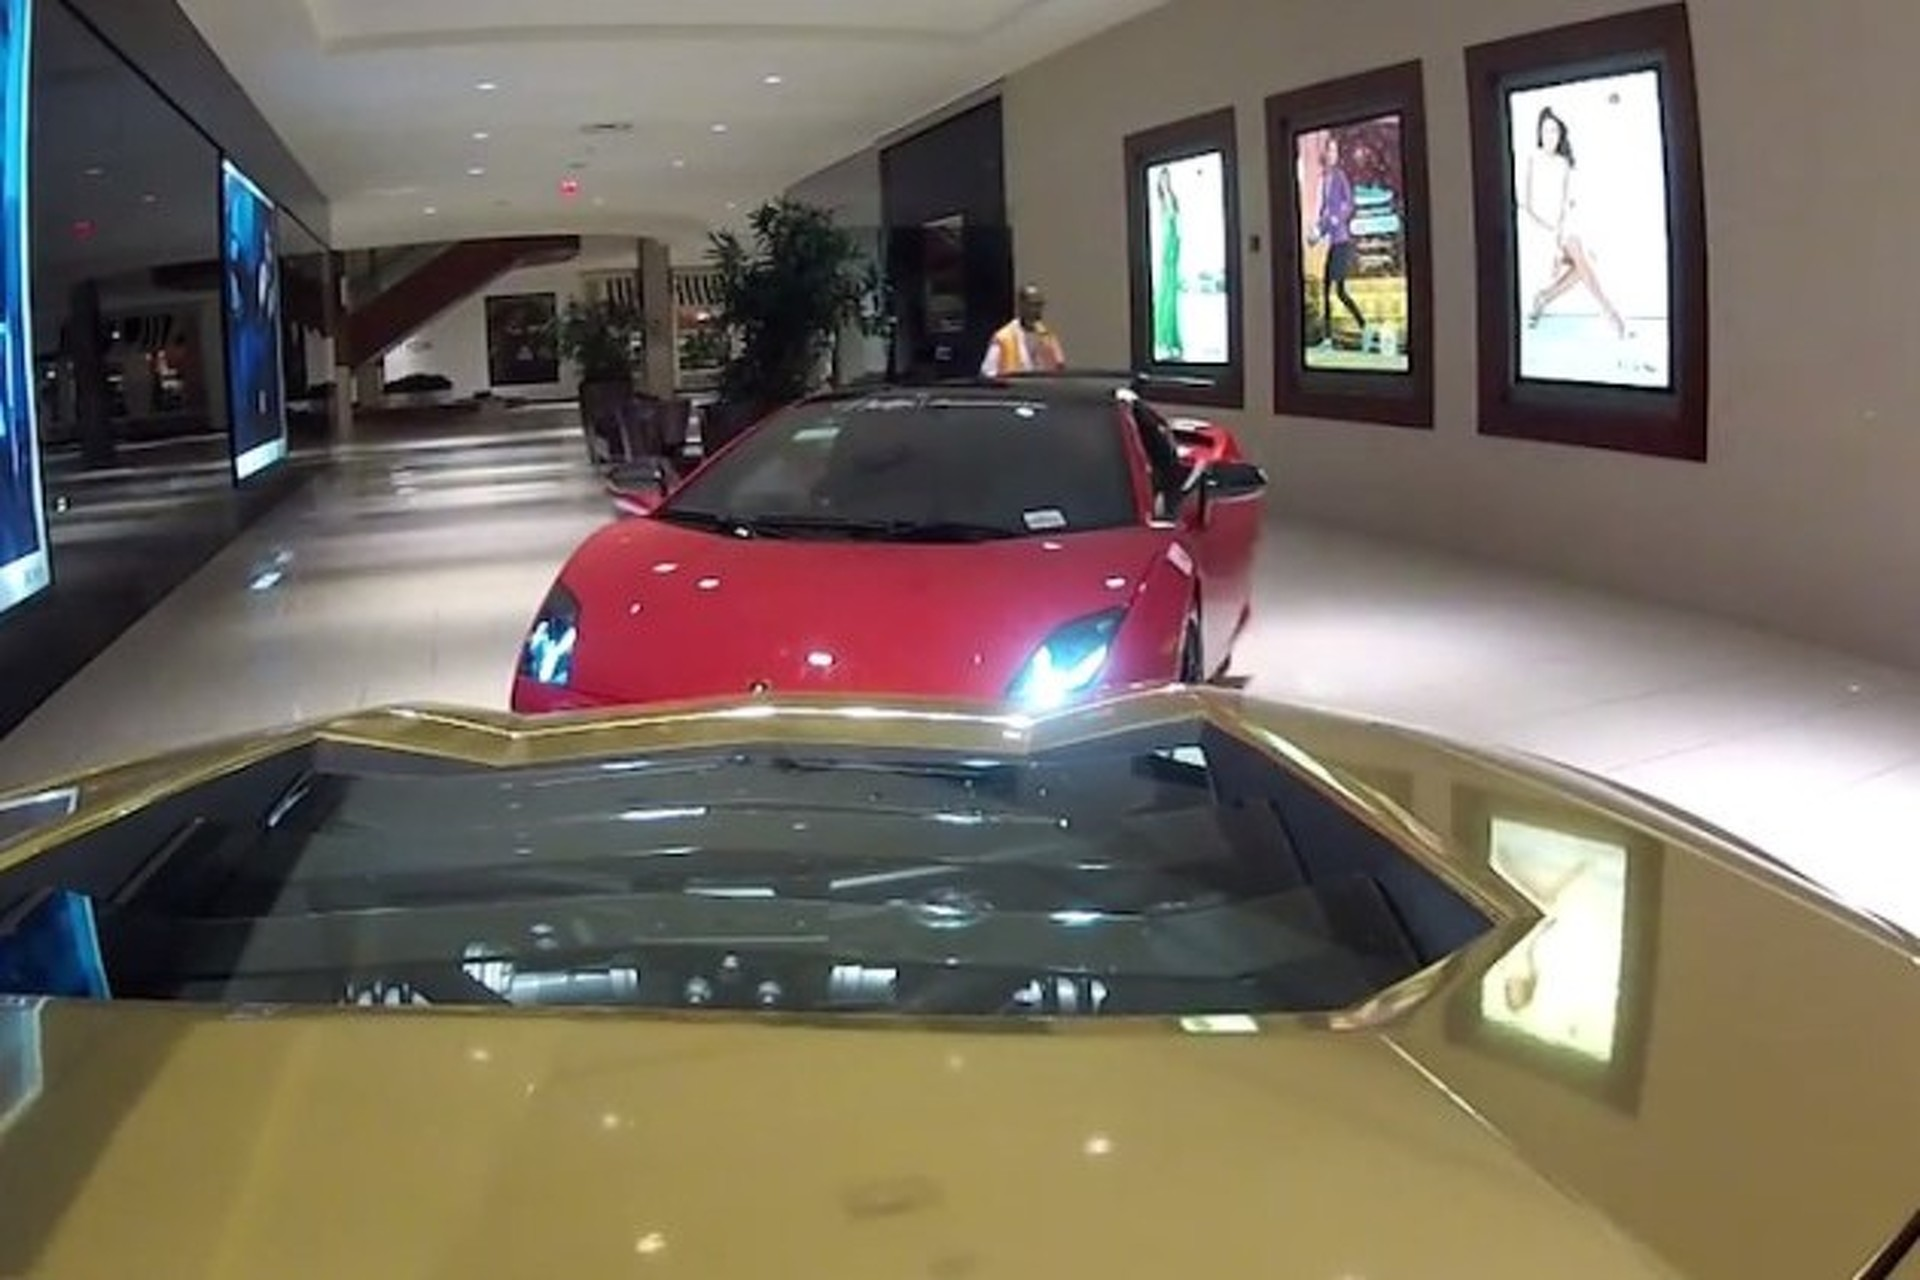 Here's 5 Lamborghinis Driving Through a Shopping Mall [Video]